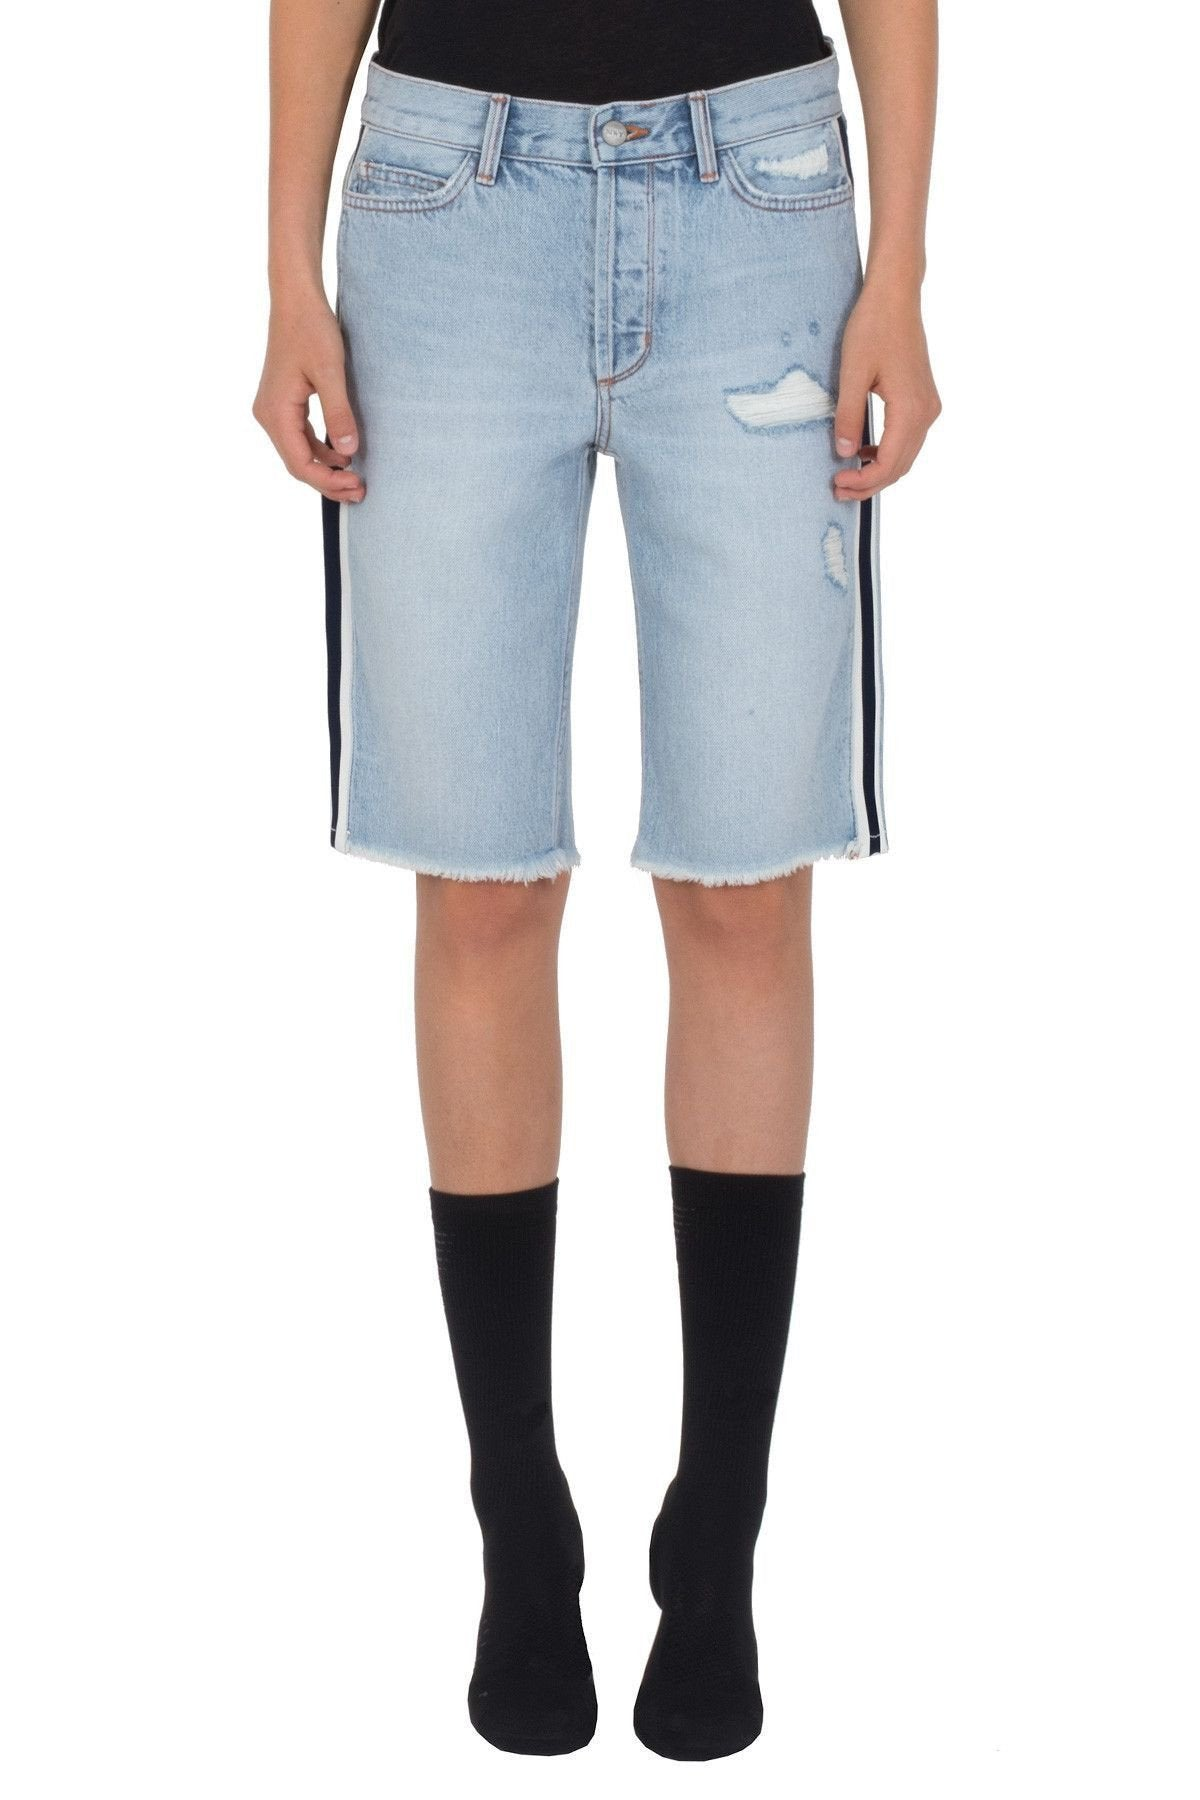 Siwy Memphis In Smokey Factory Blues Shorts-Skirts & Shorts-Siwy Denim